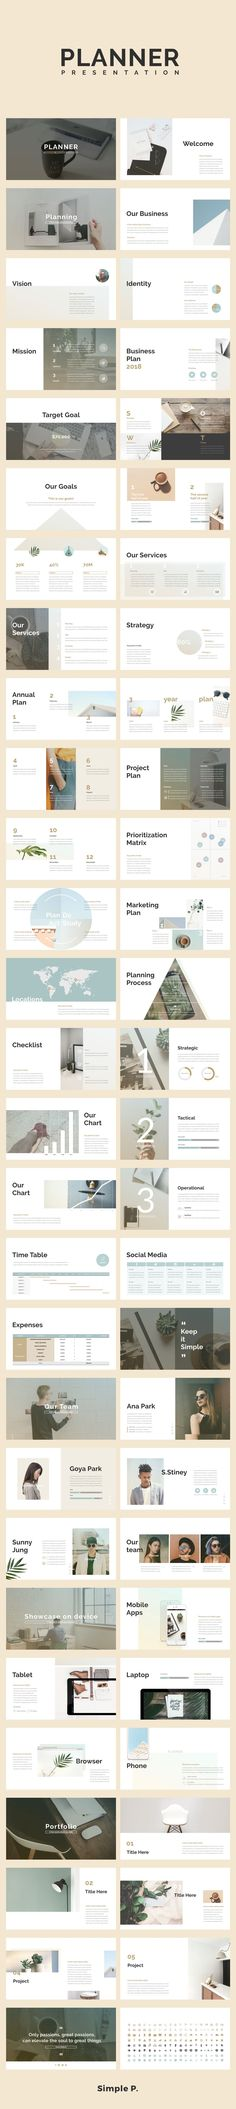 Planner PowerPoint Template is a clear presentation to Build your Plan. This is the right business plan presentation for every businessman, creator, designer, student, lecturer who wants to show their perfect brand. Business Plan Presentation, Presentation Layout, Presentation Slides, Powerpoint Presentation Templates, Keynote Template, Powerpoint Themes, Web Design, Layout Design, Template Power Point